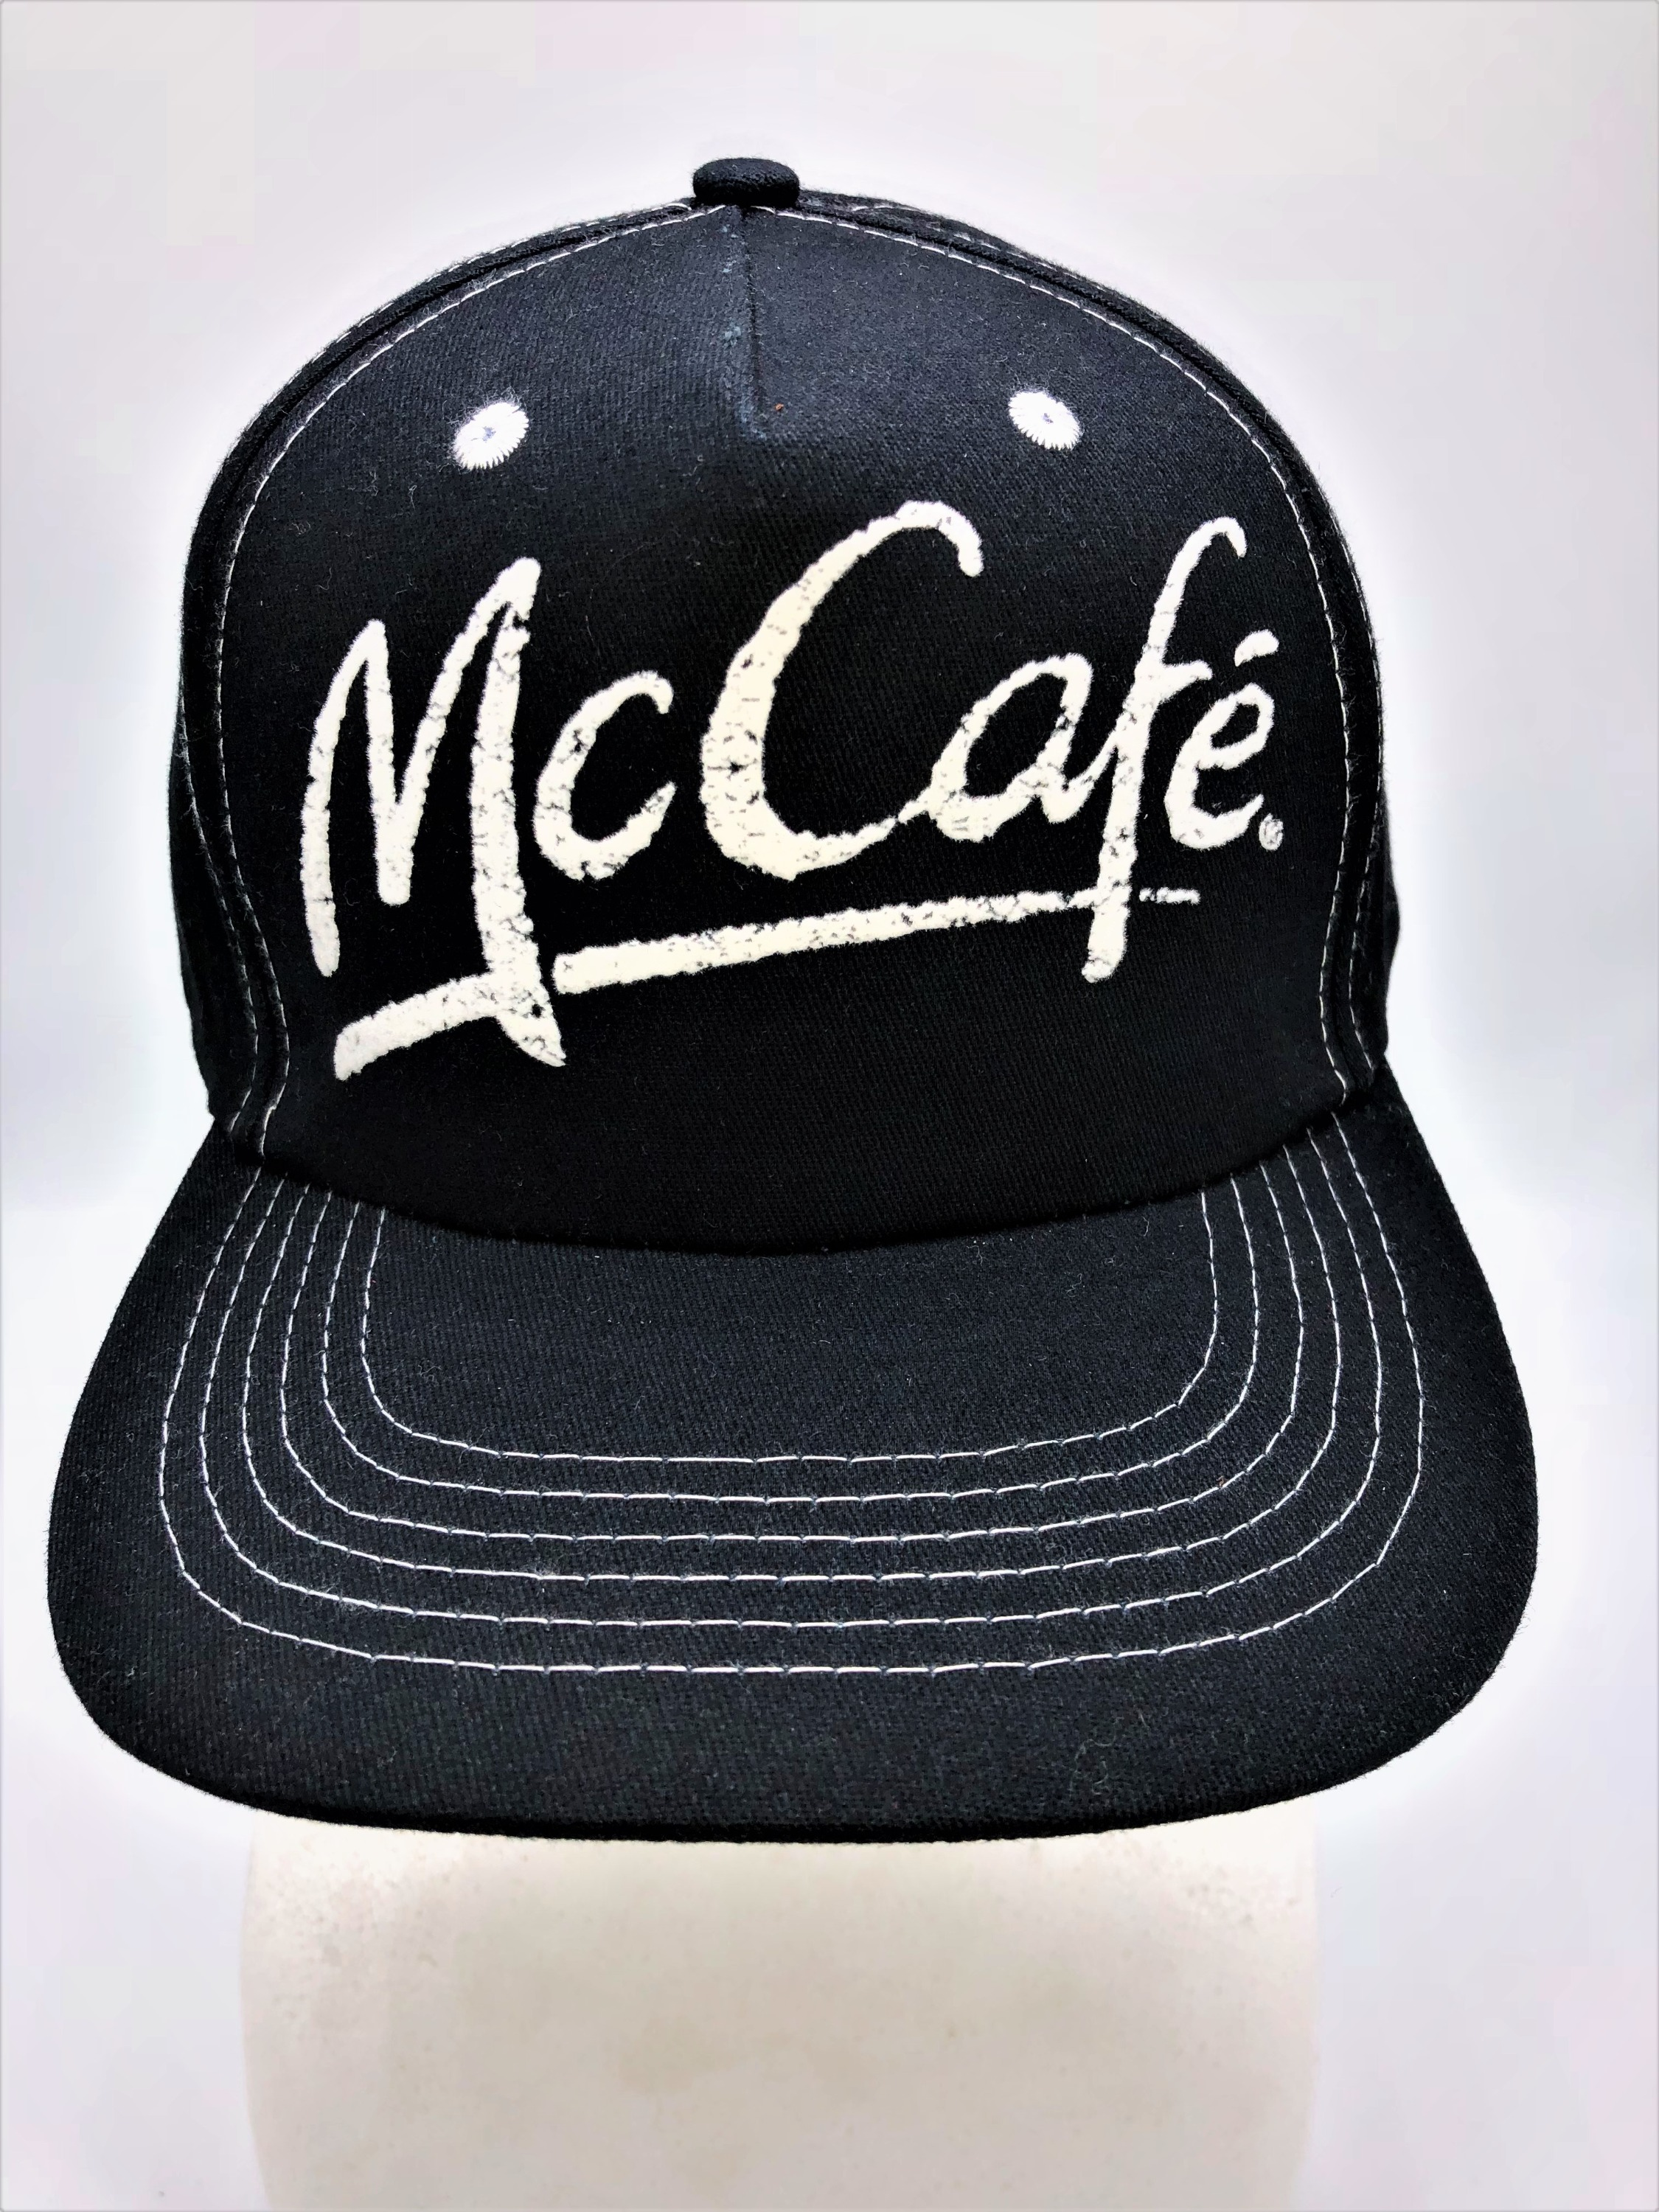 Hat (MC Cafe)_edited